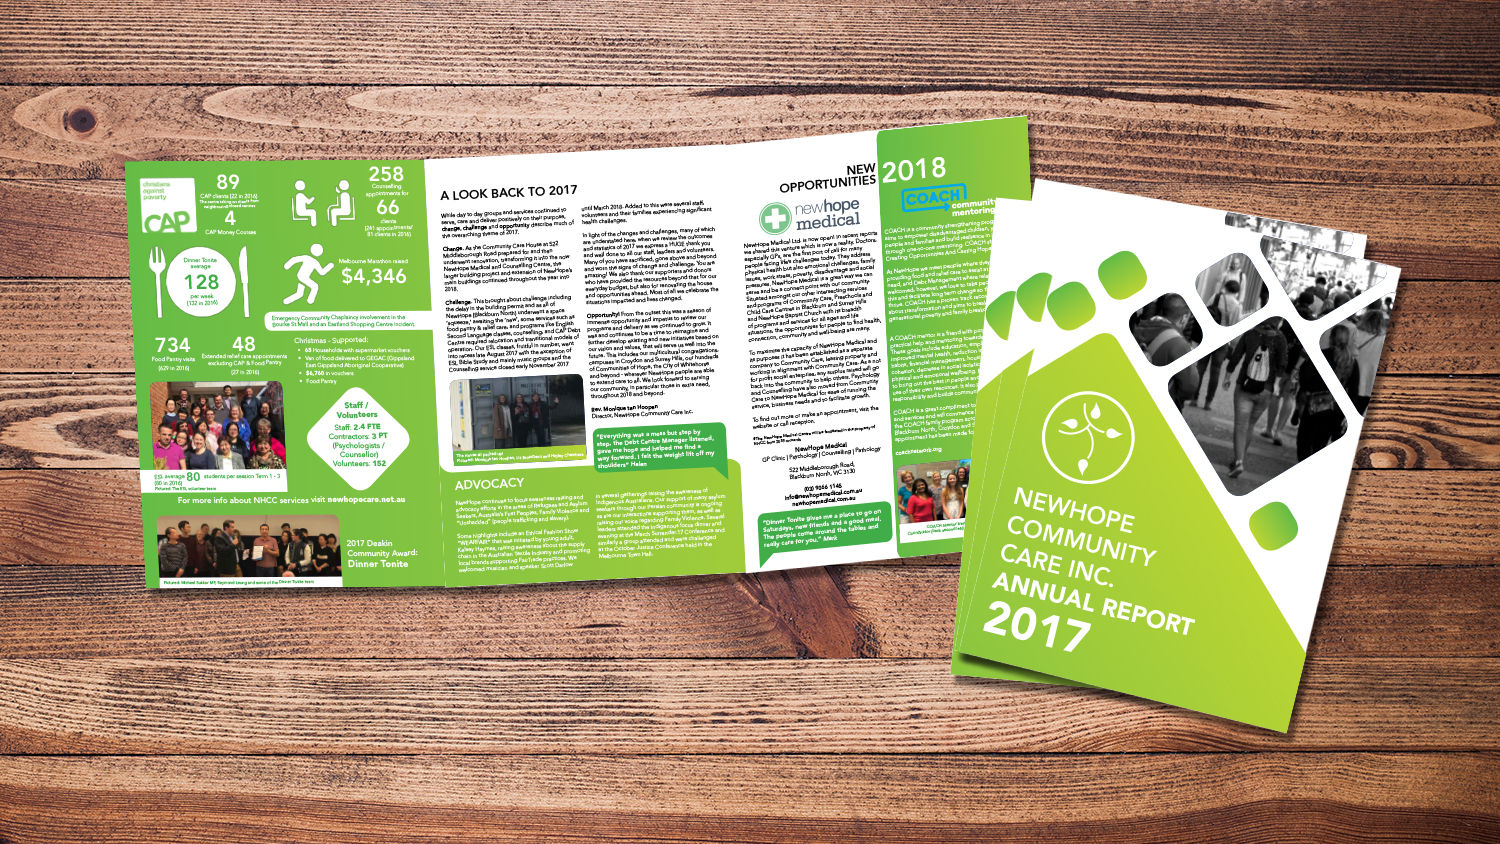 NewHope Community Care Annual Report Design